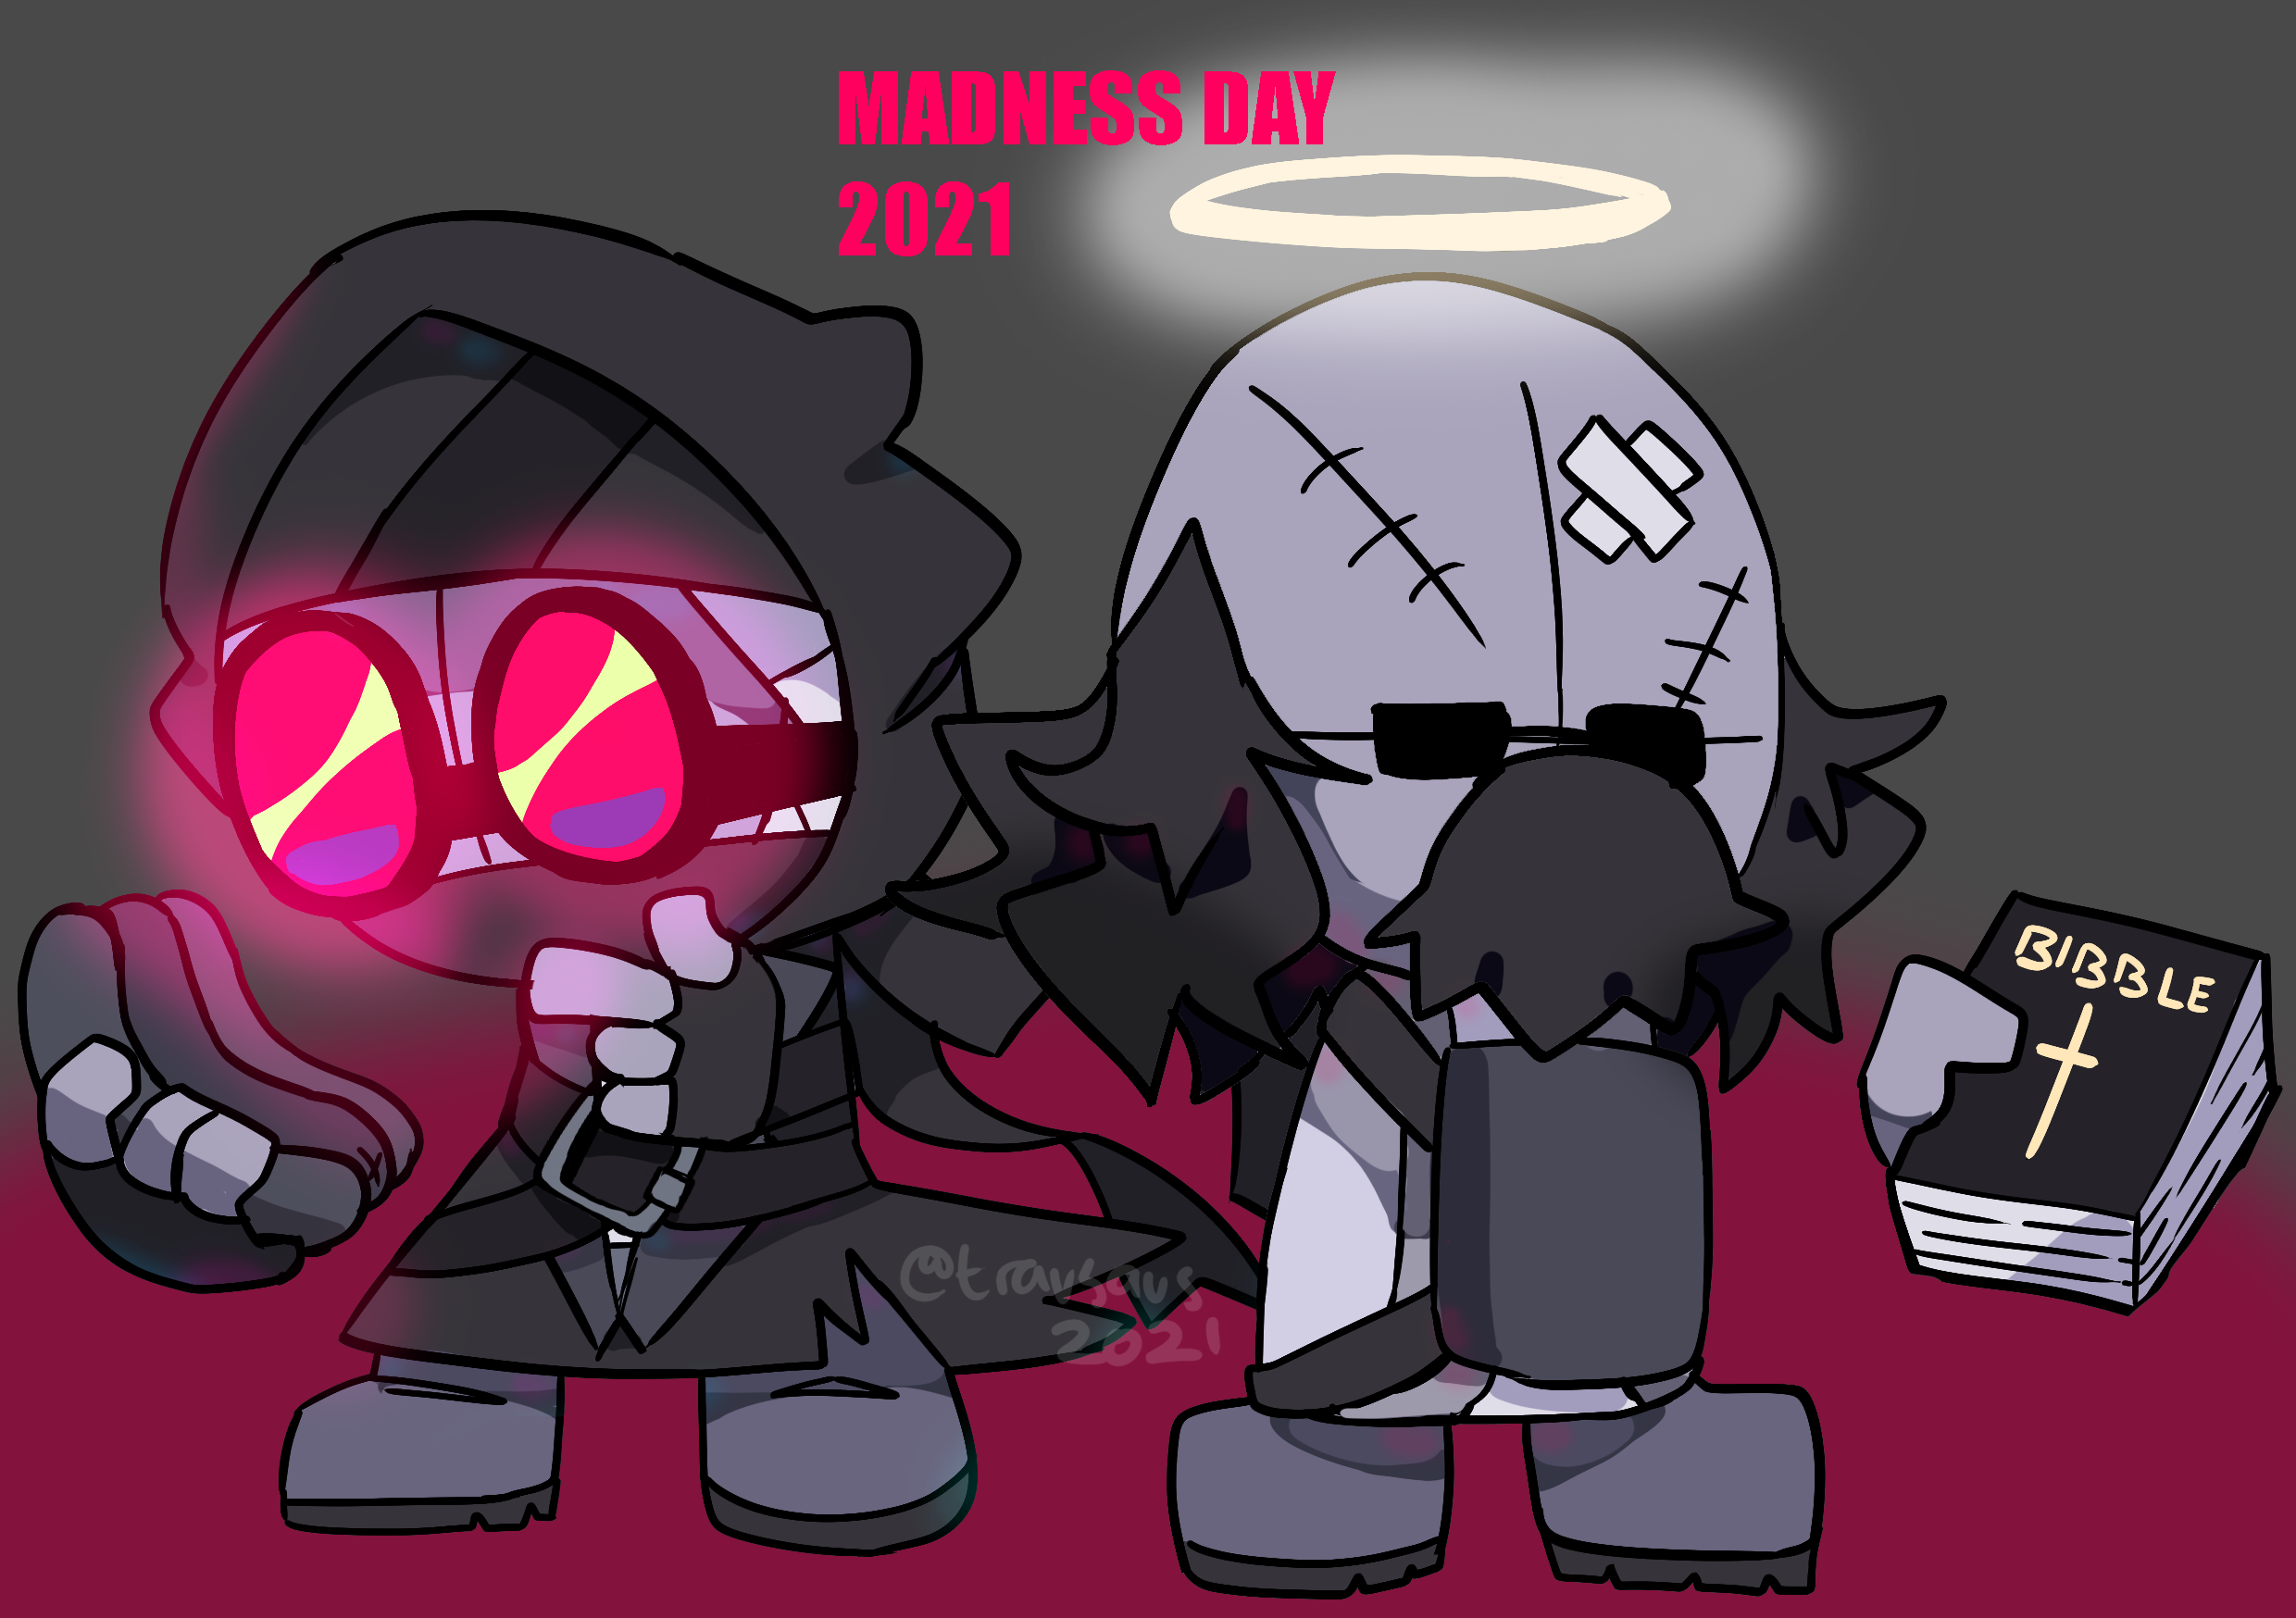 MADNESS DAY THING I THINK